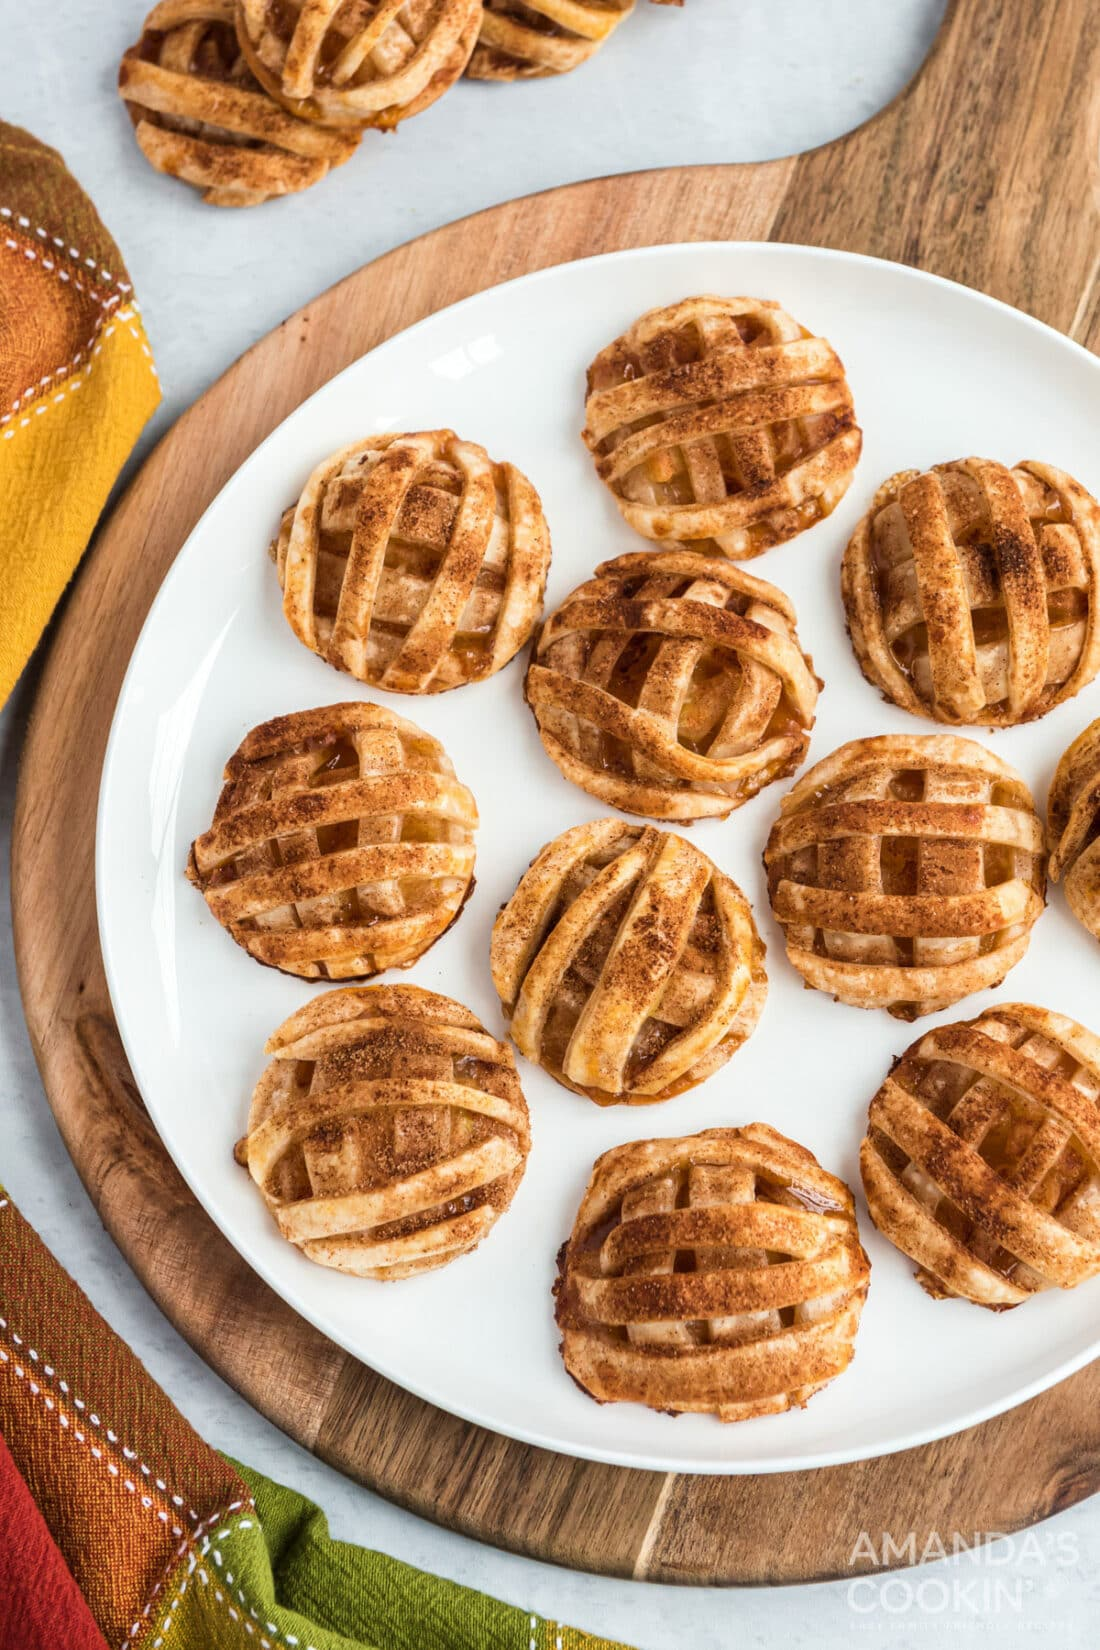 apple pie cookies on a round cutter board